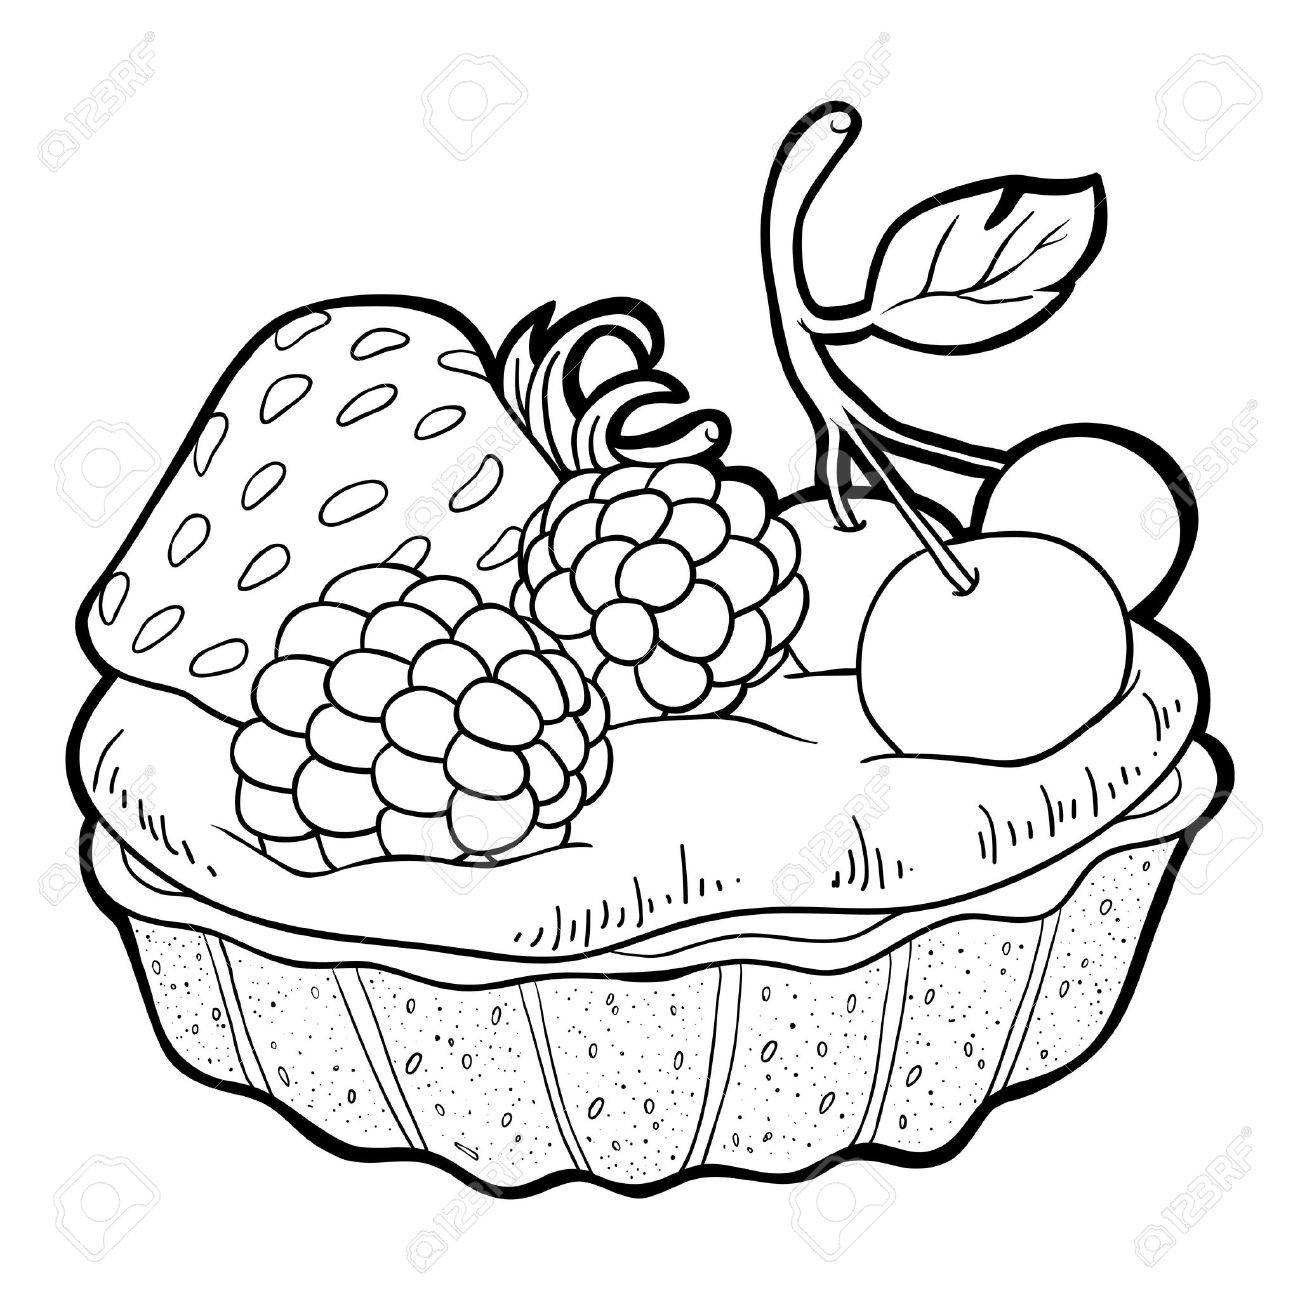 Coloring Book (cake) Royalty Free Cliparts, Vectors, And Stock ...